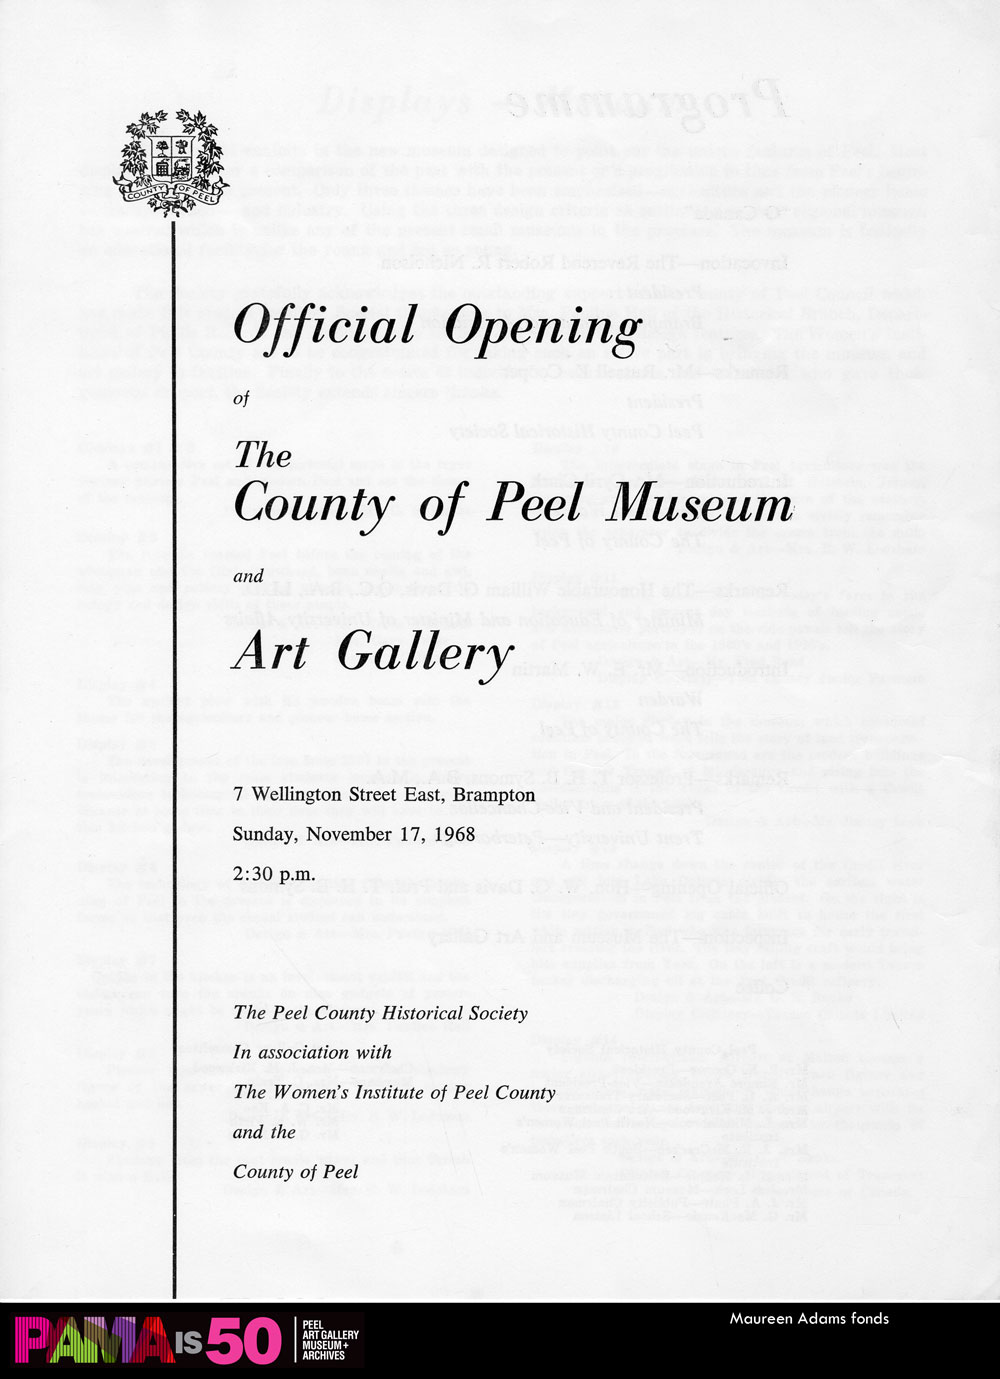 Official Opening Document, 1968